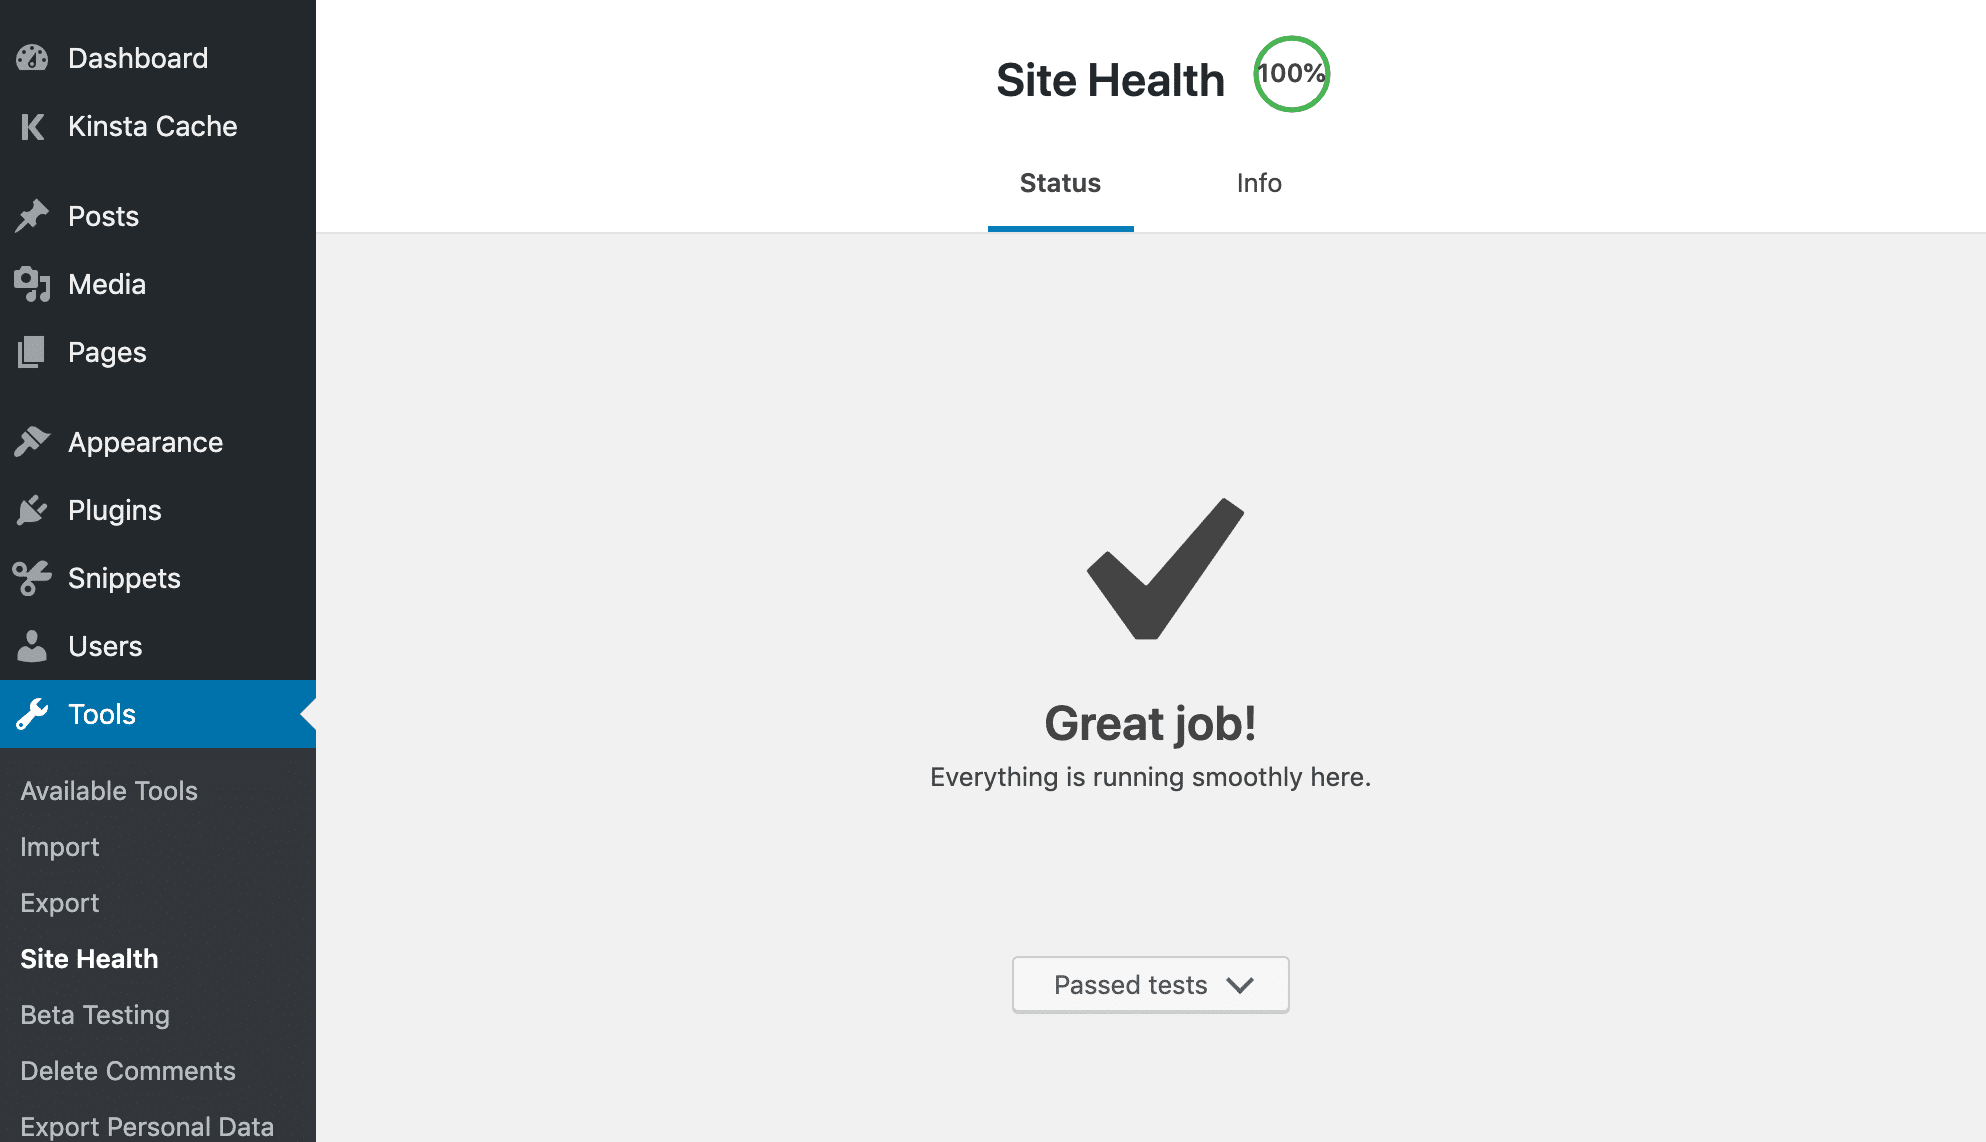 Site Health tool in WordPress - 100% score